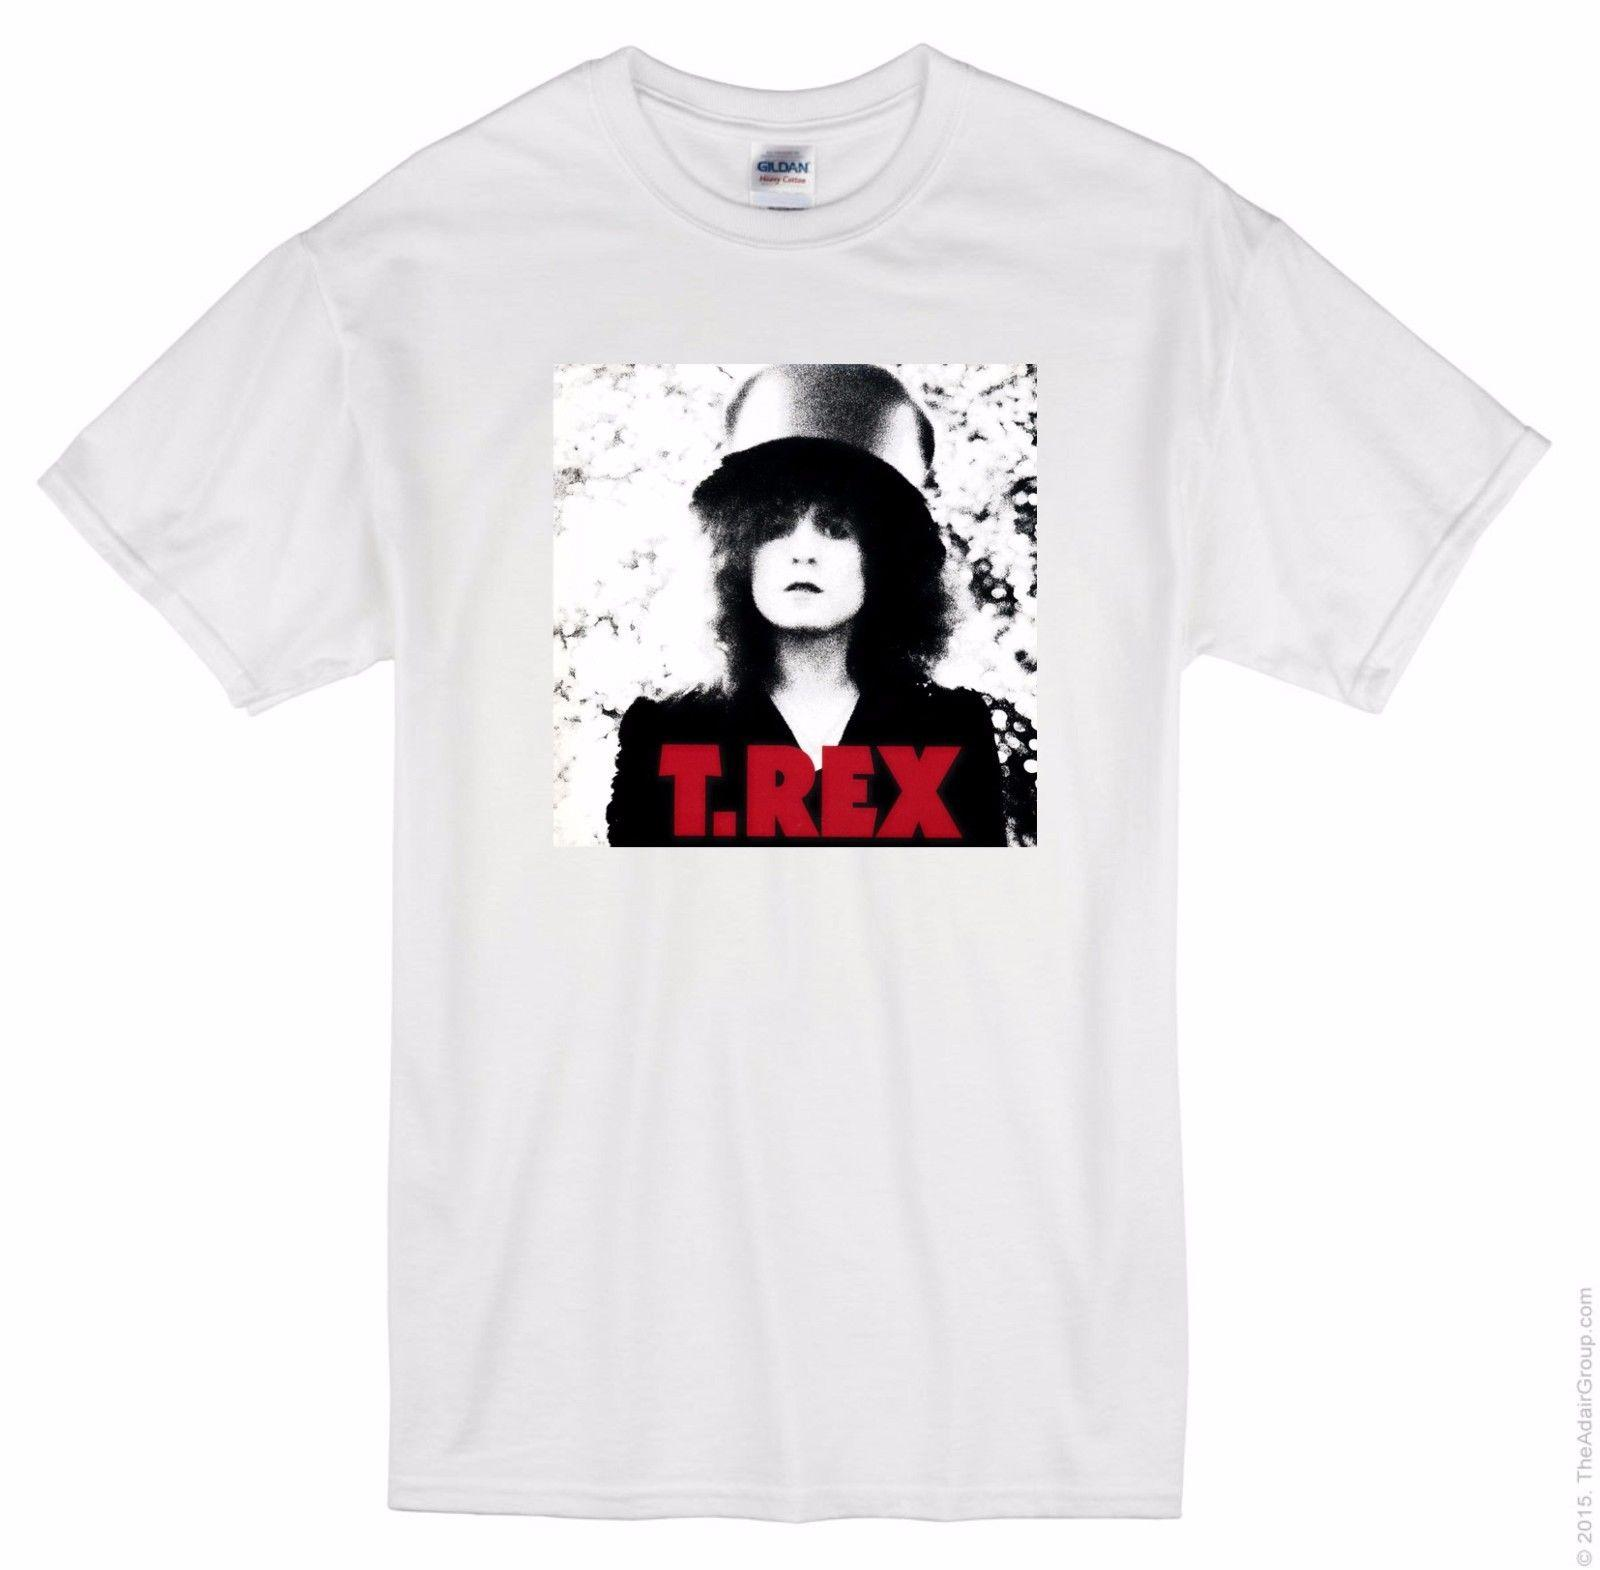 4f1468f4 T REX T Shirt Marc Bolan The SLIDER Album Cover All Sizes Mens 2018 Fashion  Brand T Shirt O Neck 100%cotton T Shirt Tops Tee Custom Buy Online T Shirts  Make ...